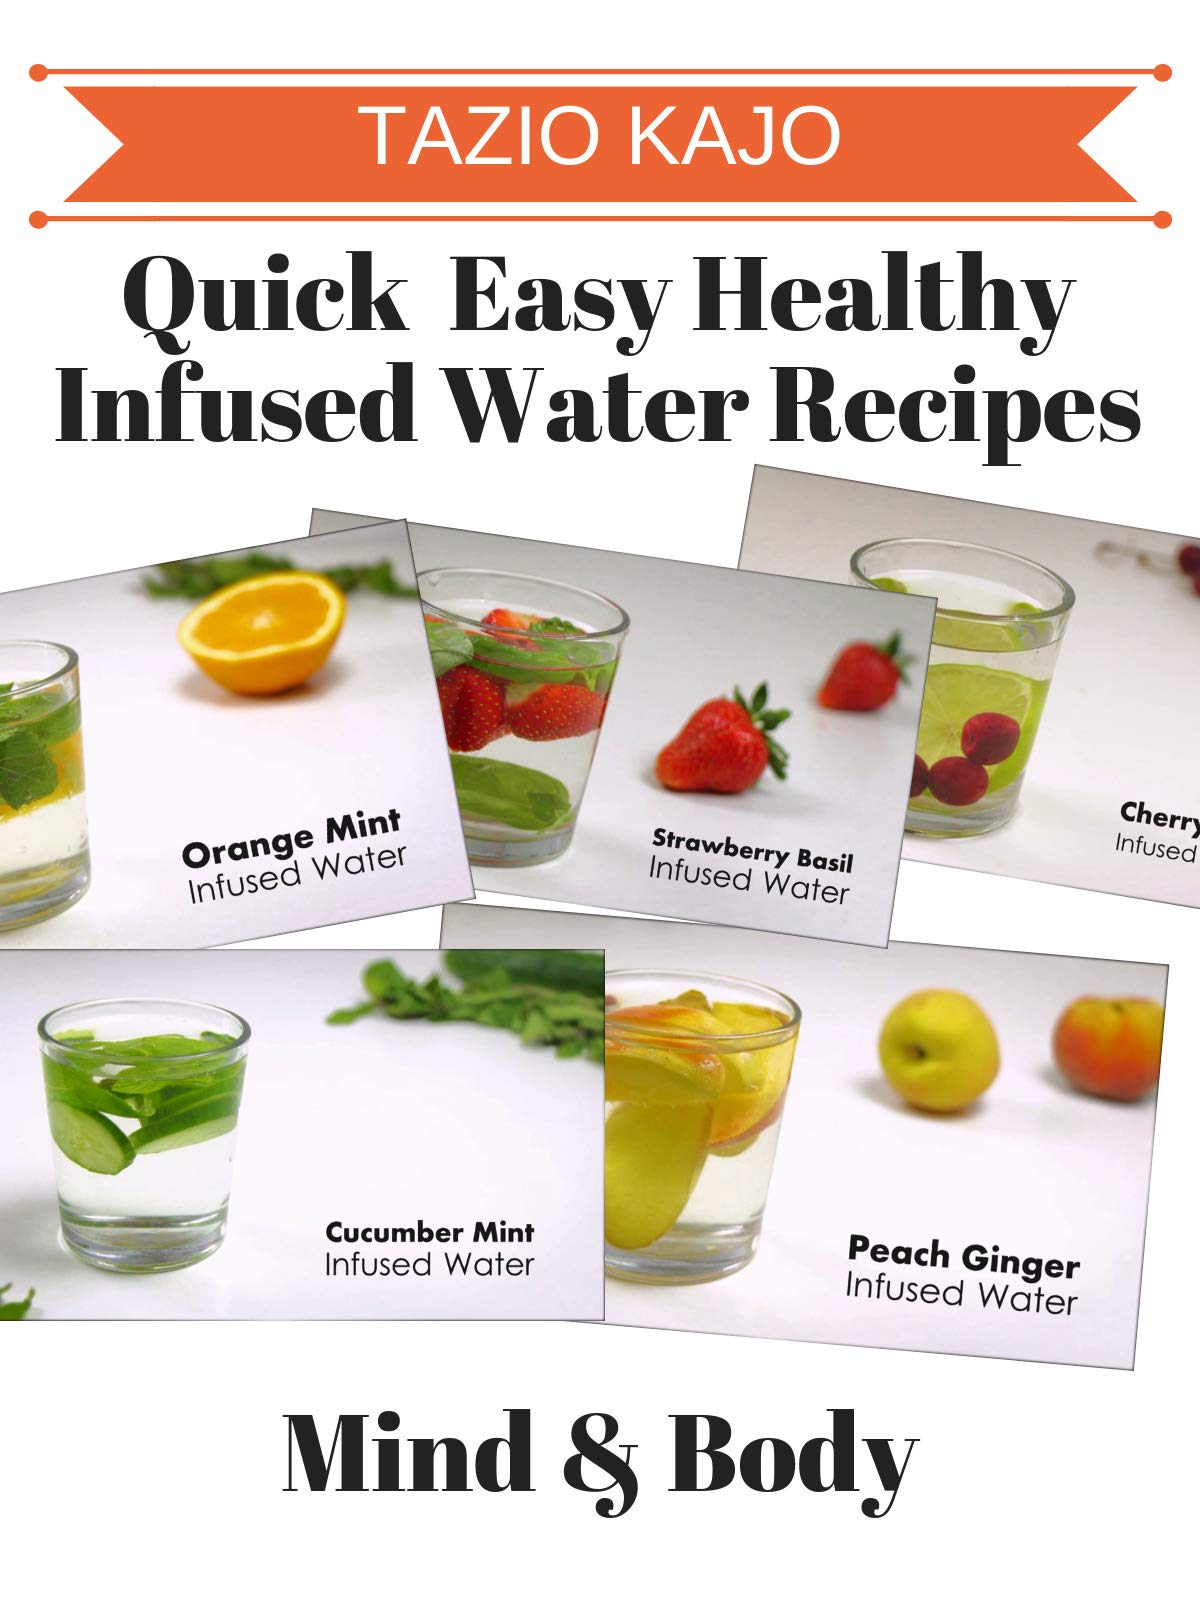 Quick & Easy Healthy Infused Water Recipes